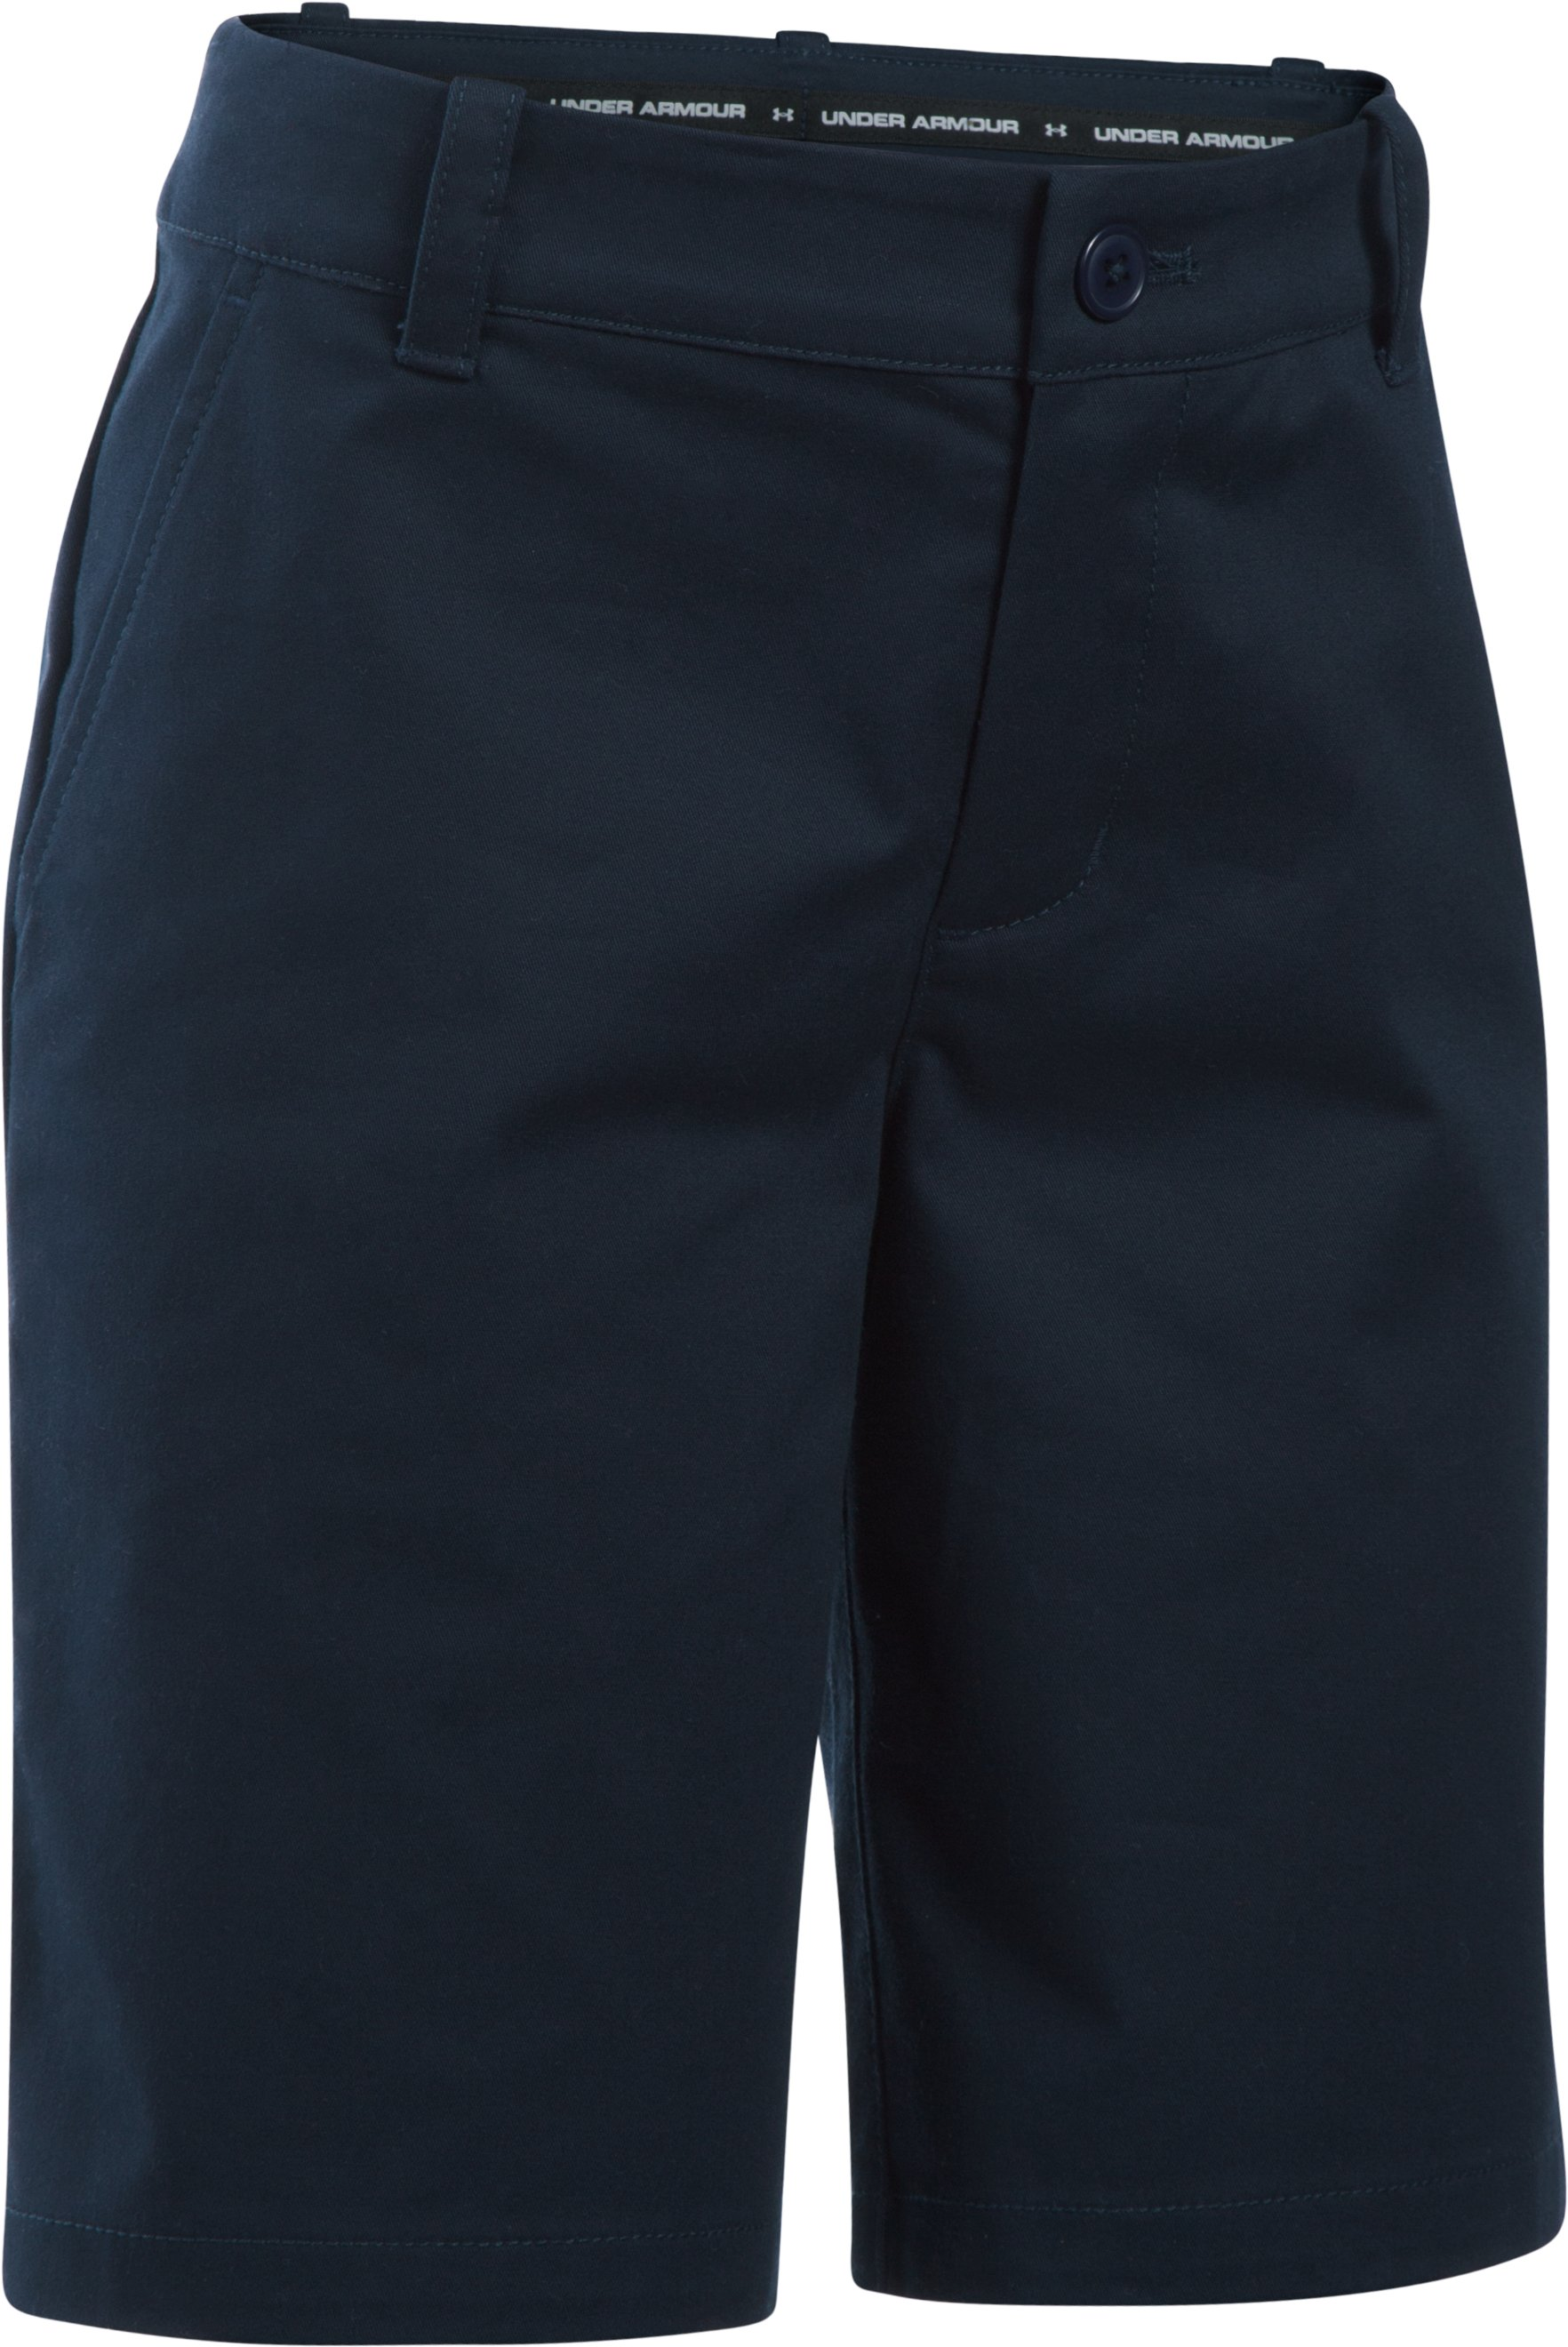 Girls' Pre-School UA Uniform Chino Shorts, GLORY BLUE,